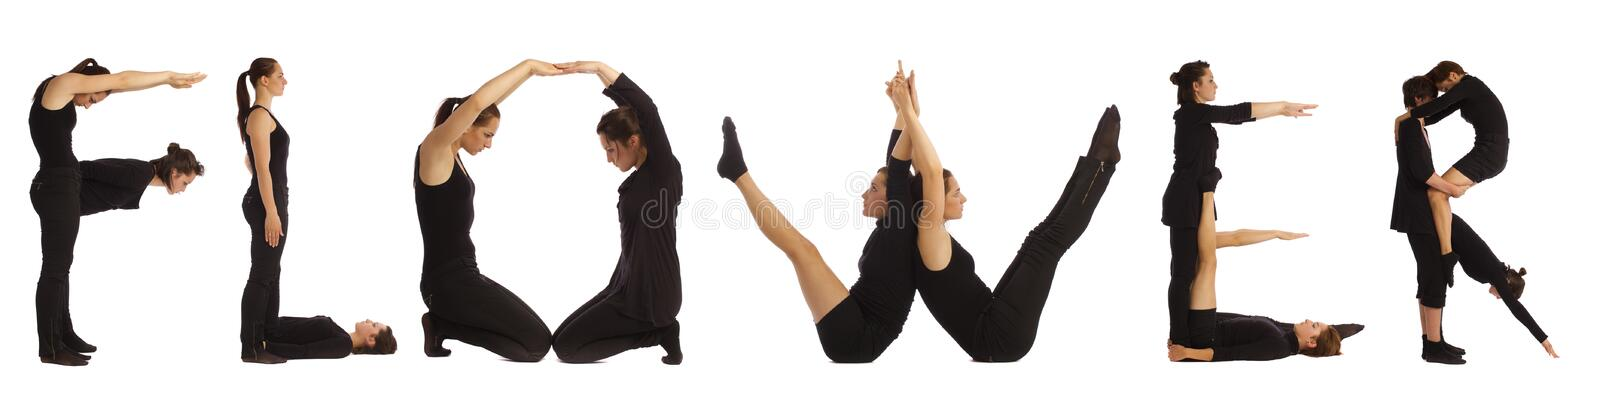 Black dressed people forming word FLOWER royalty free stock photos